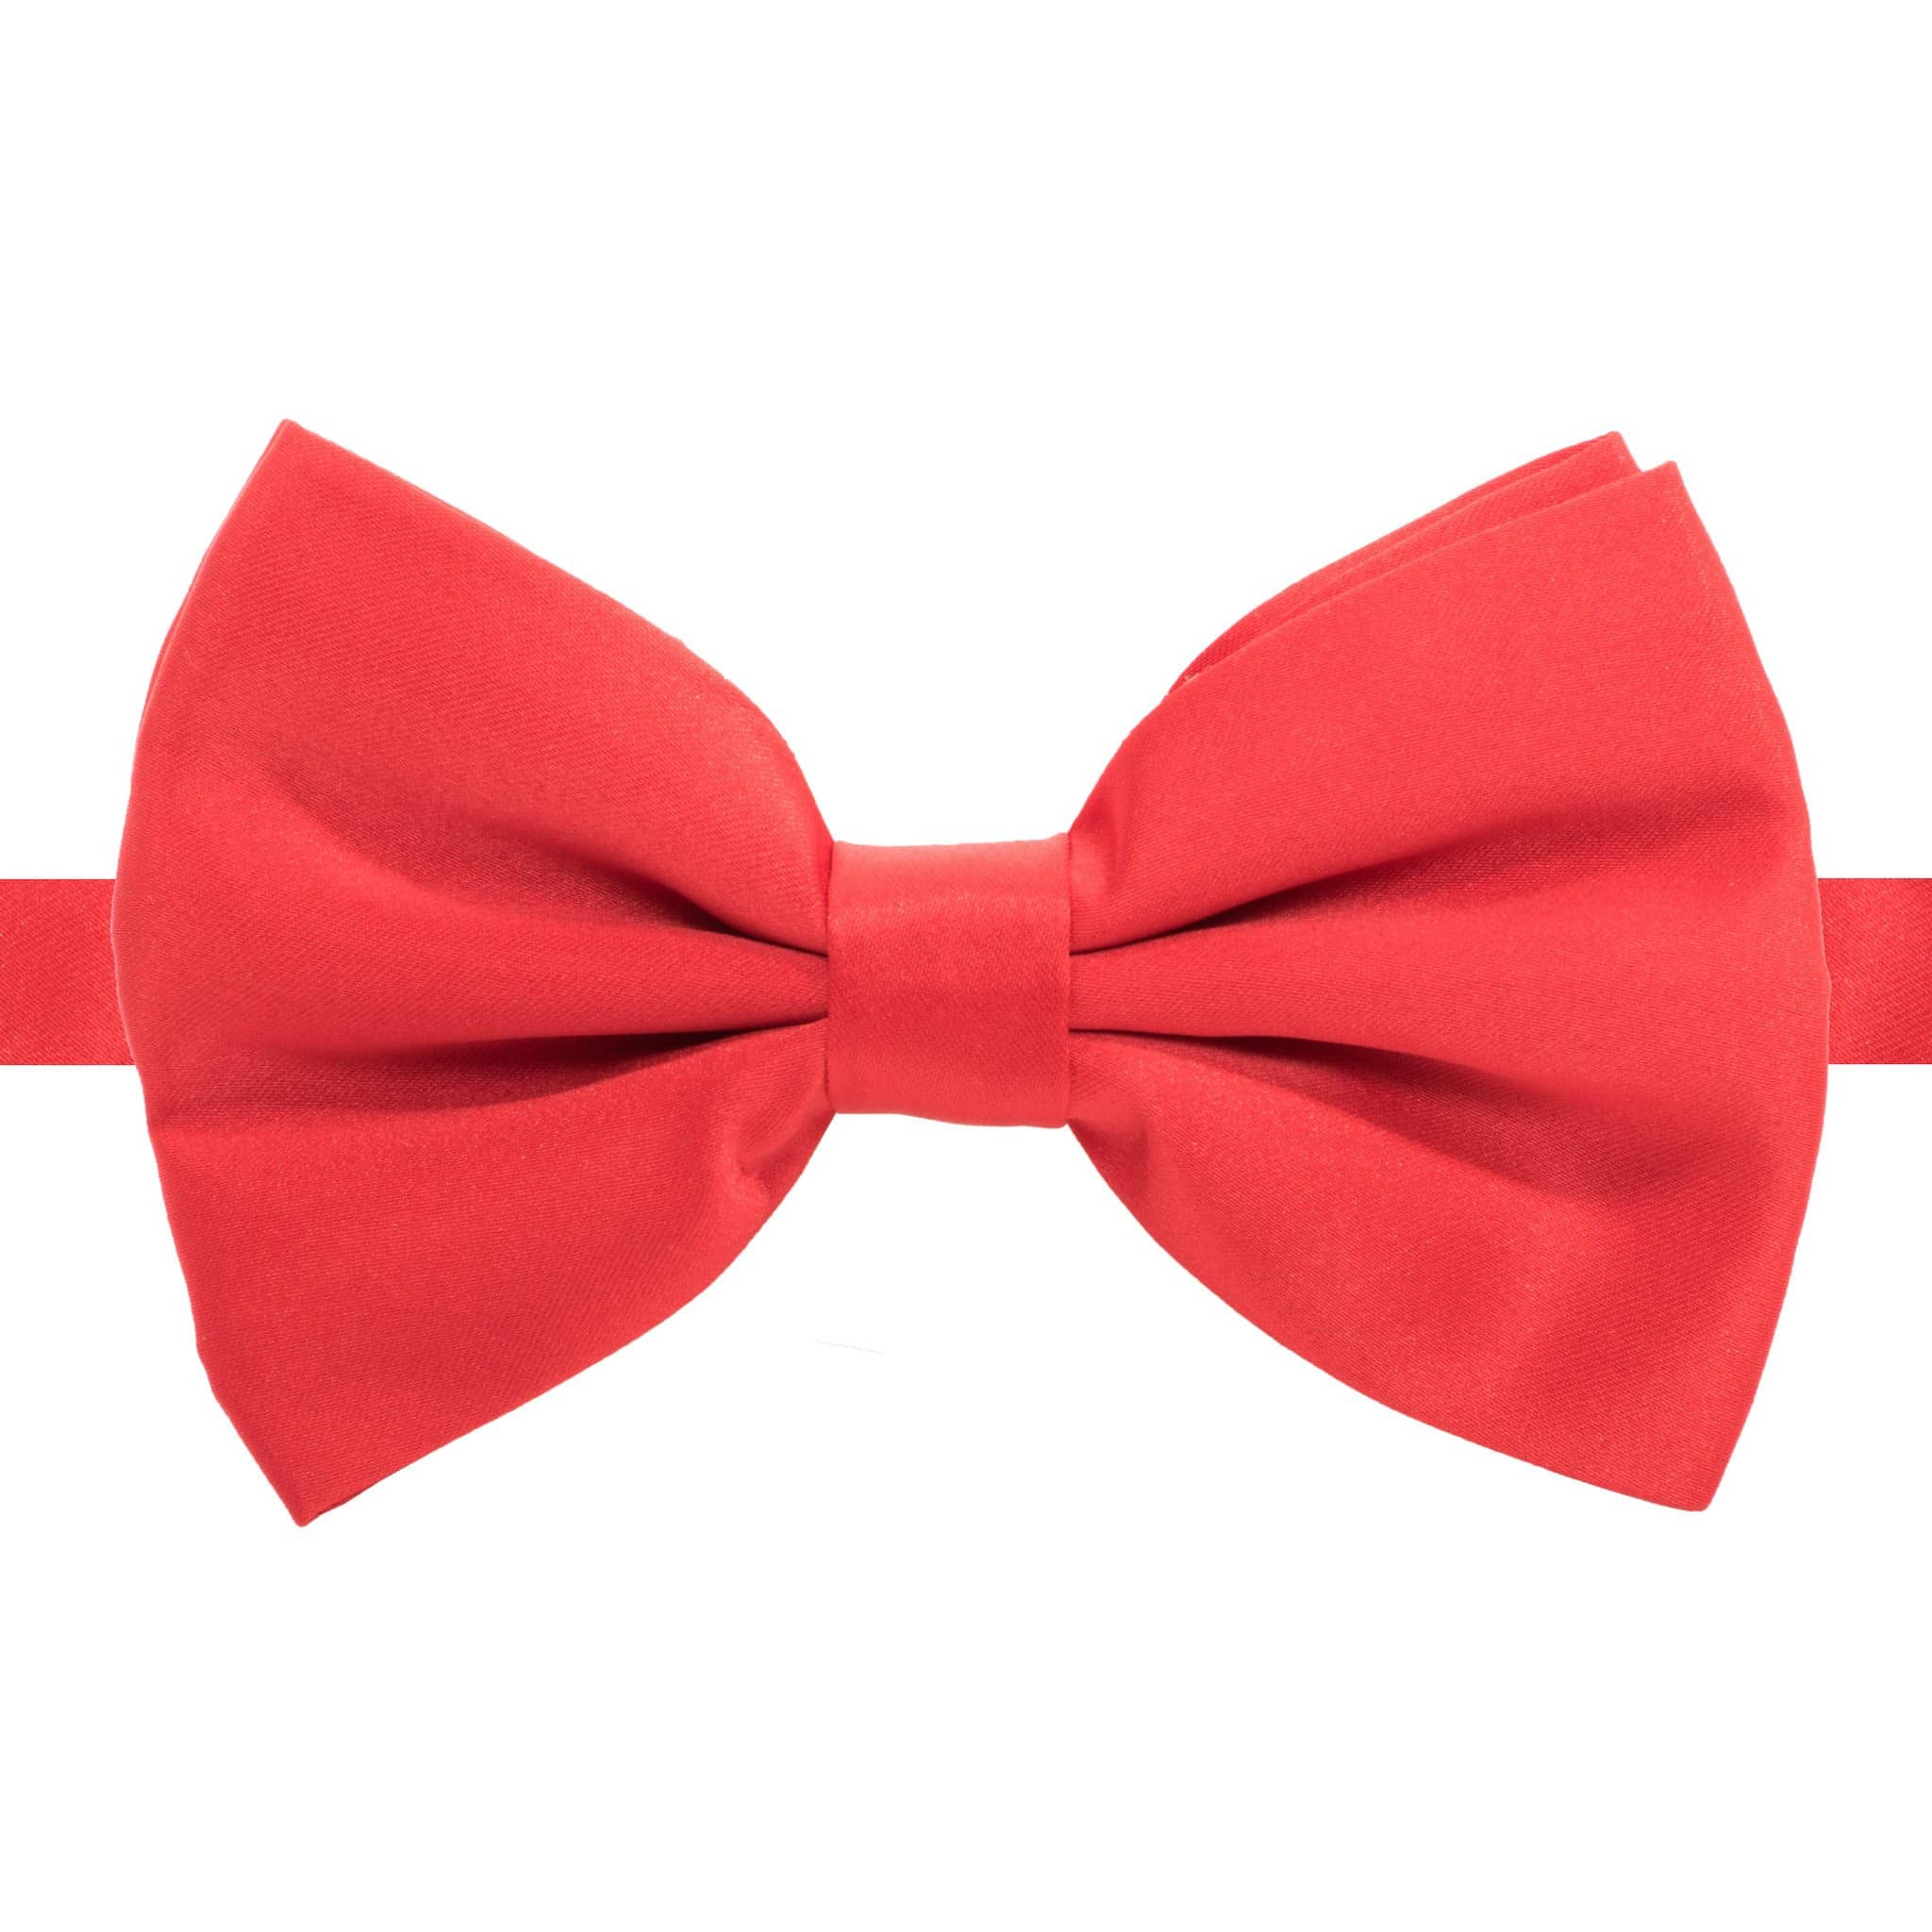 Ferrecci Premium Adjustable Satine Bow Tie